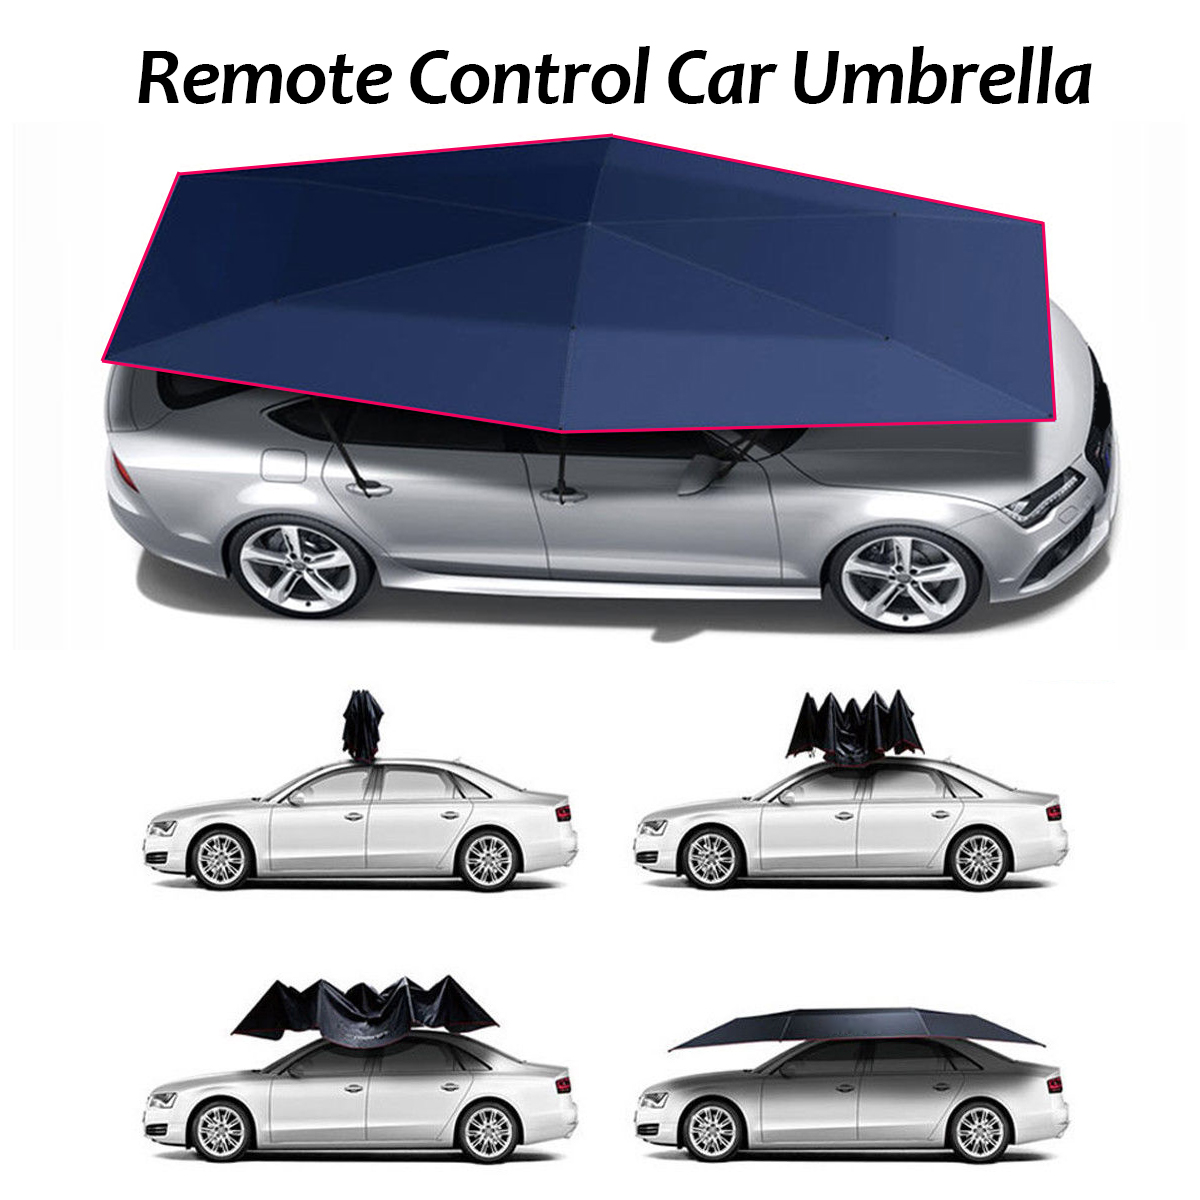 Automatic Awning Tent Car Cover Outdoor Waterproof Foldable Car Canopy Cover Portable Sun Shelter Car Roof Tent Remote Control portable large beach camping tent waterproof canopy sun shelter outdoor awning party roof top tarp hiking family barraca gazebo